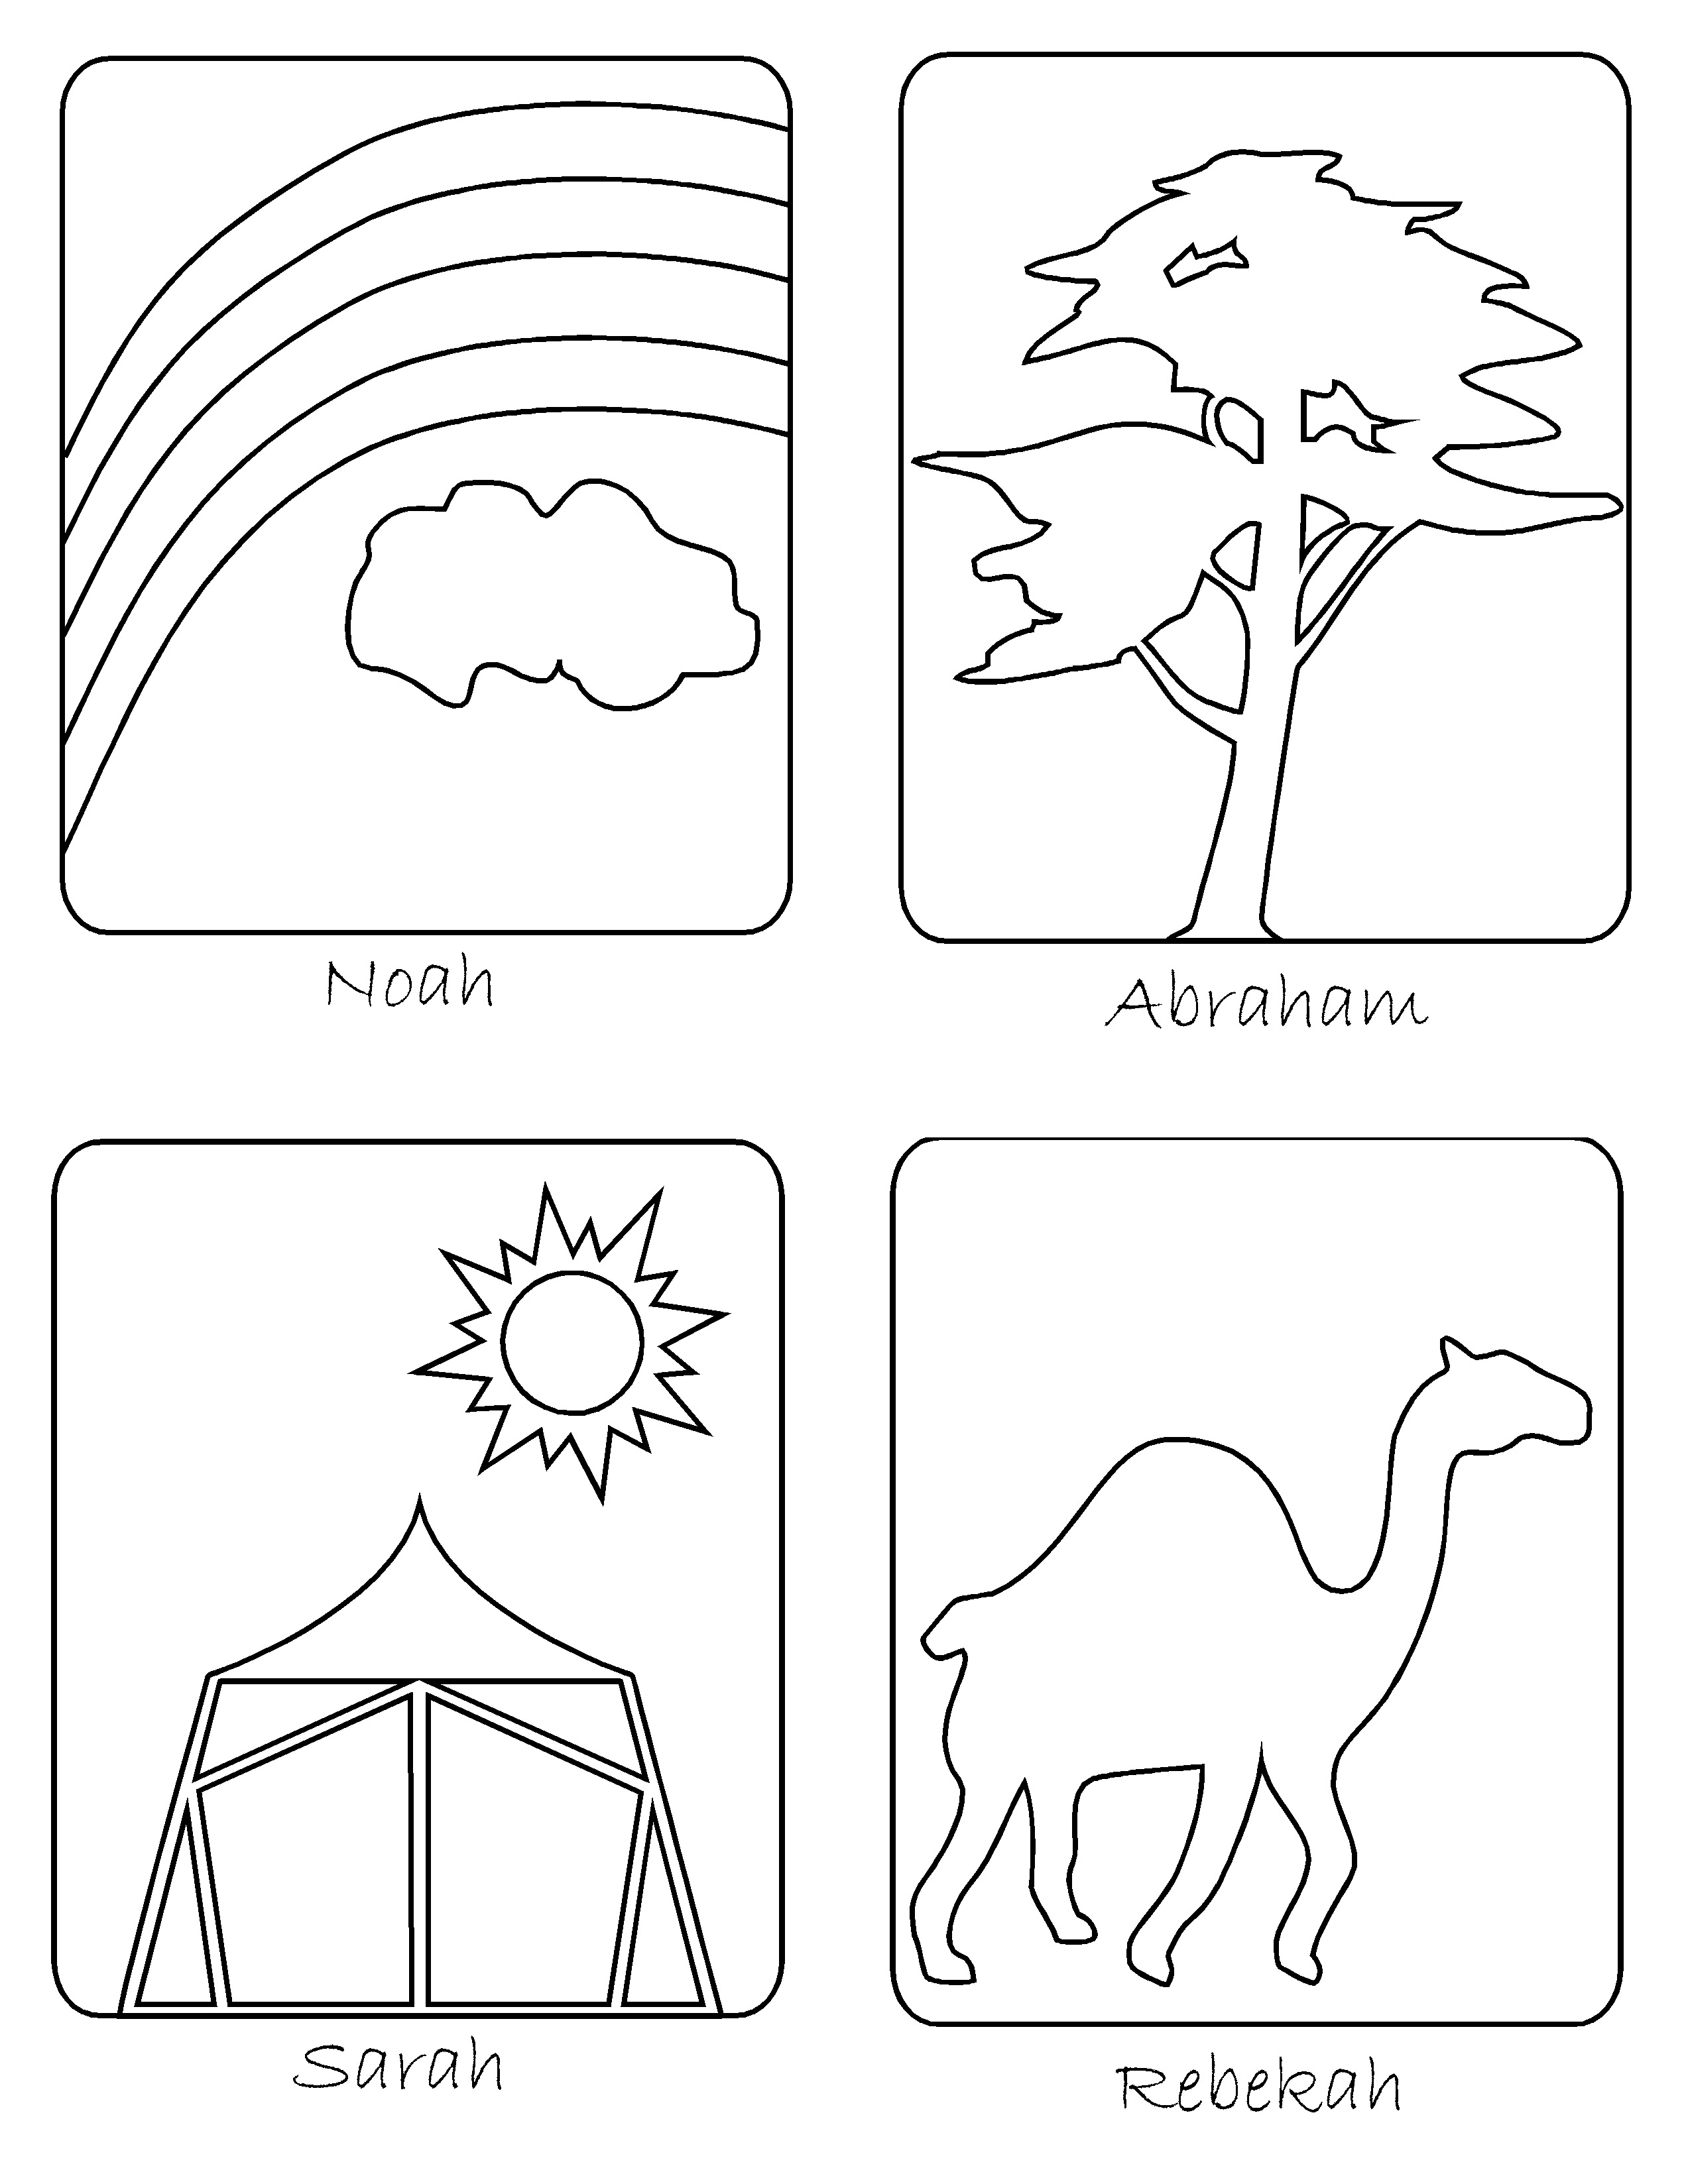 jesse tree coloring pages - photo#17